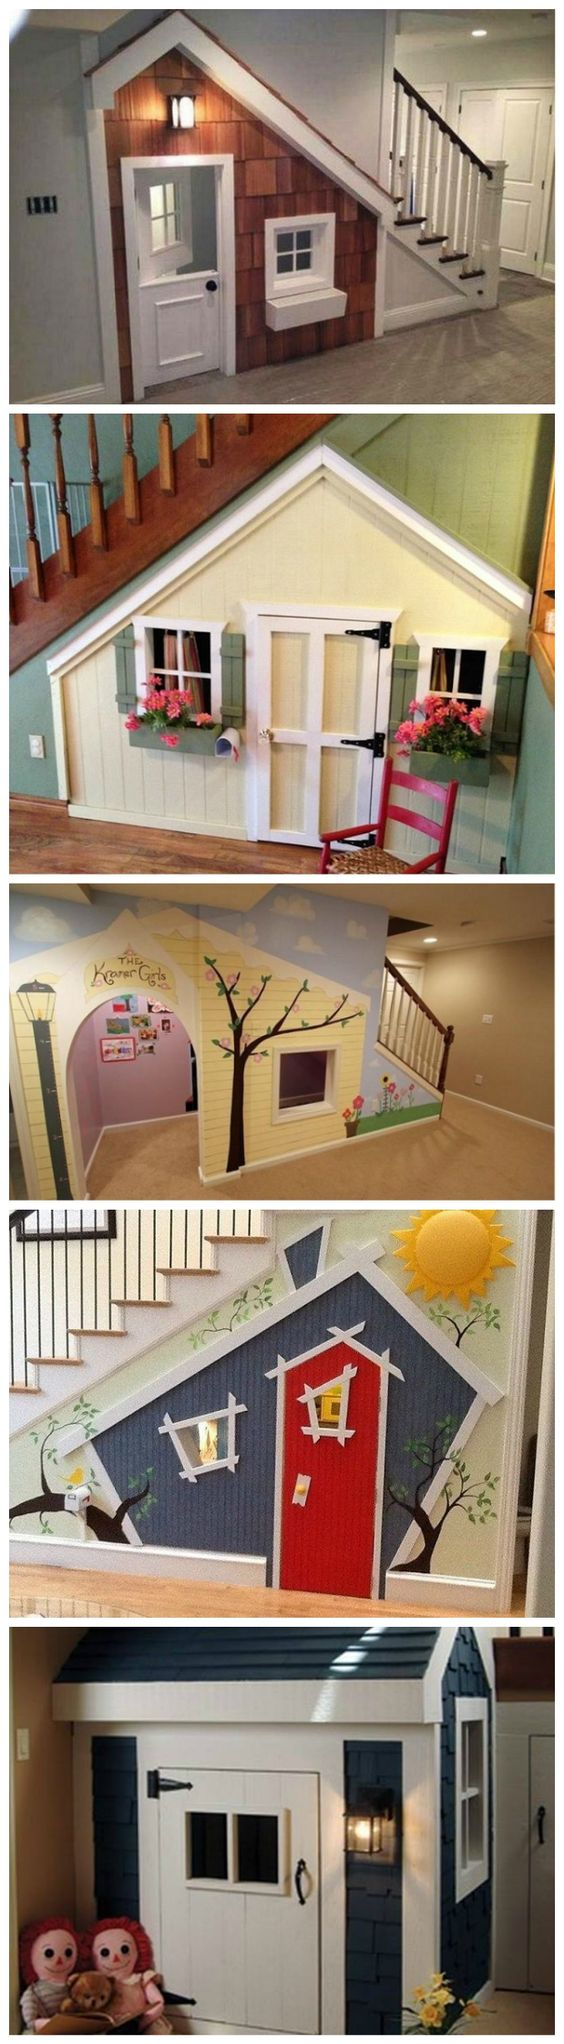 Kids indoor playhouse under stairs mr and mrs interior for Interior playhouse designs